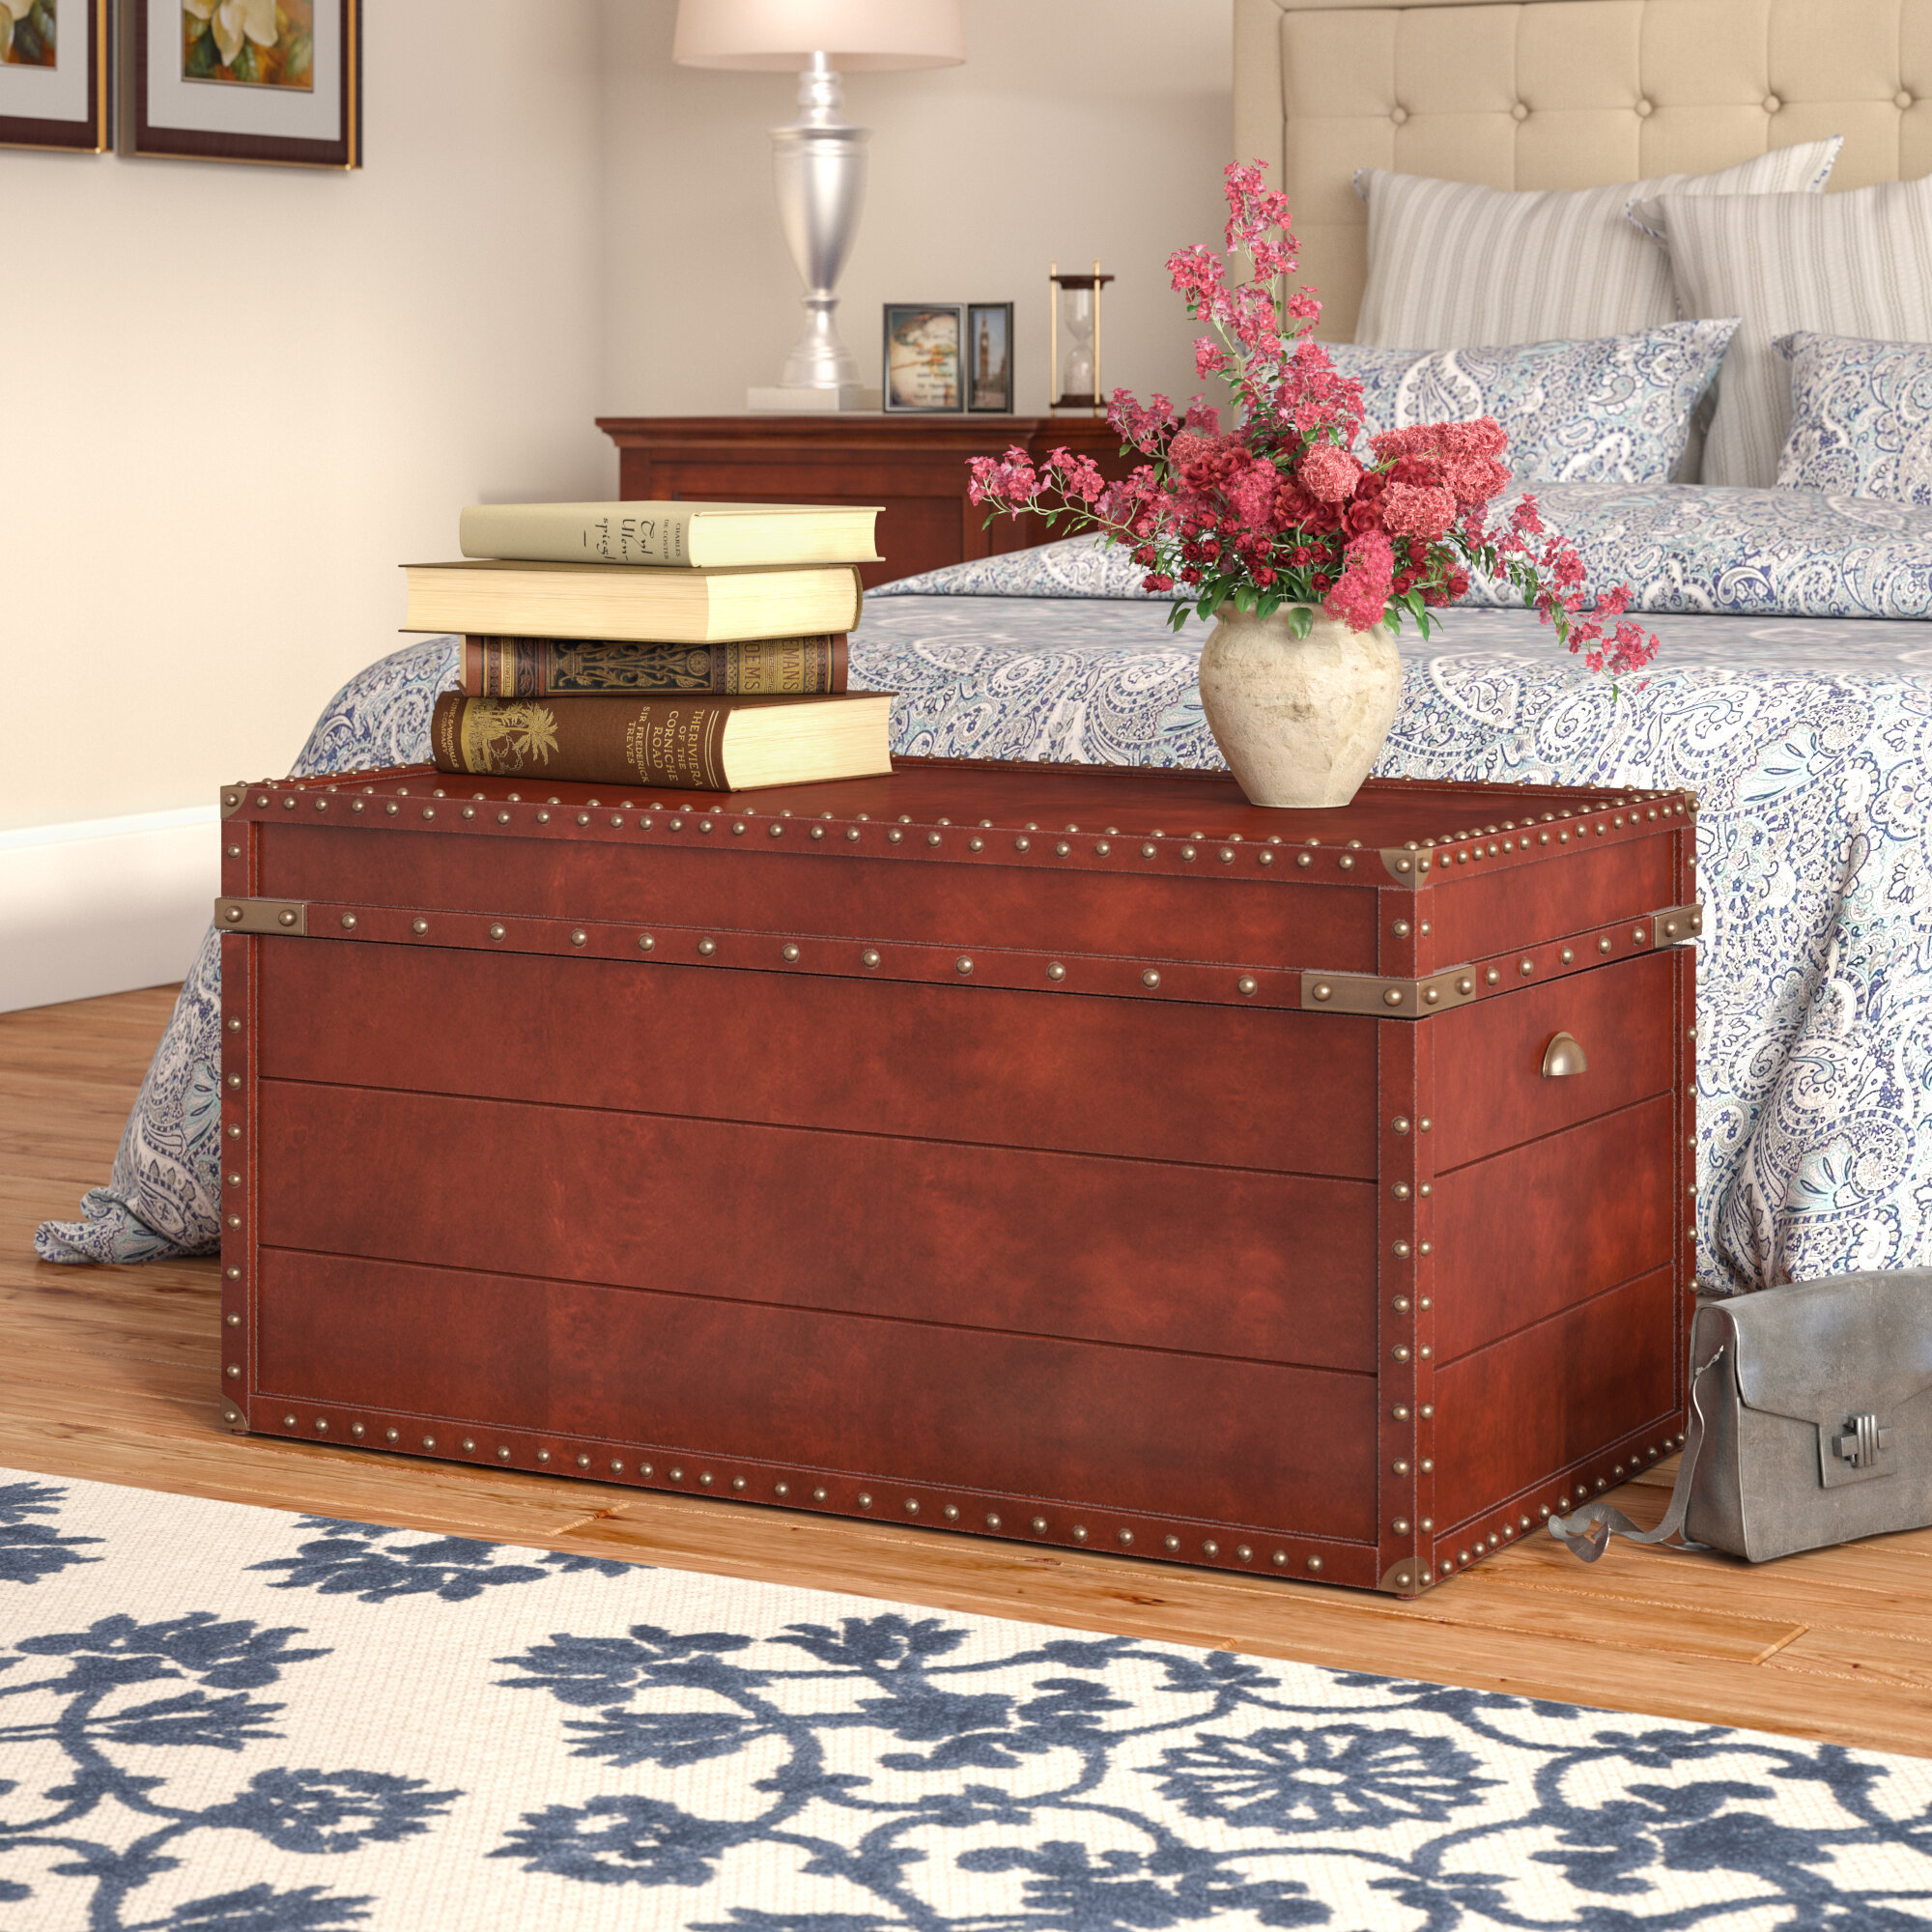 sold coffee shop table trunk chest blanket antique pine box